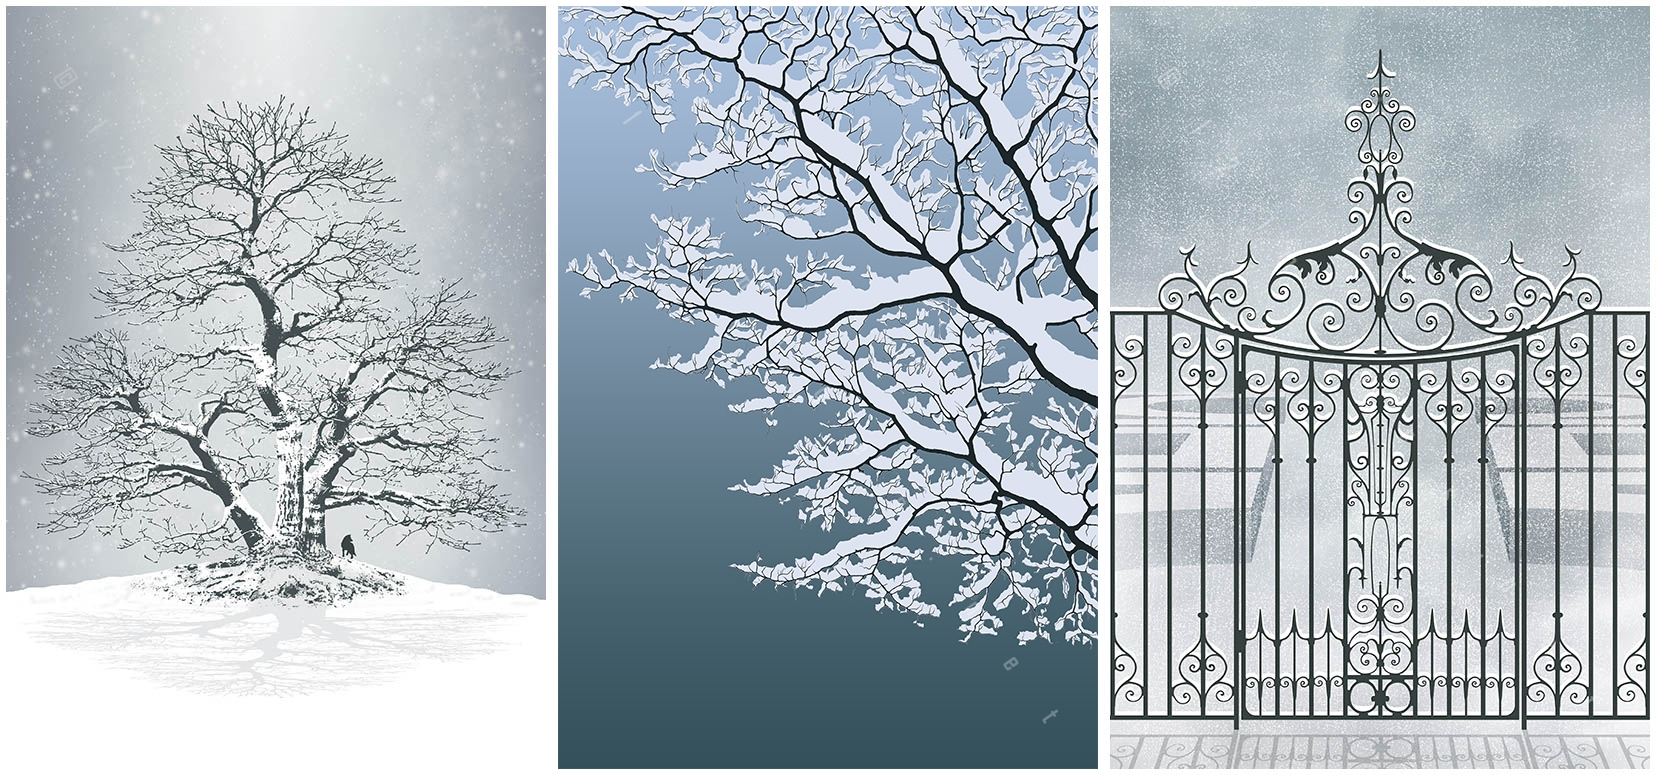 lonely tree standing in winter snow top of the hill with a wolf in silent snowfall snow covered snow laden branches blue sky wind still garden gate wrought iron hedges